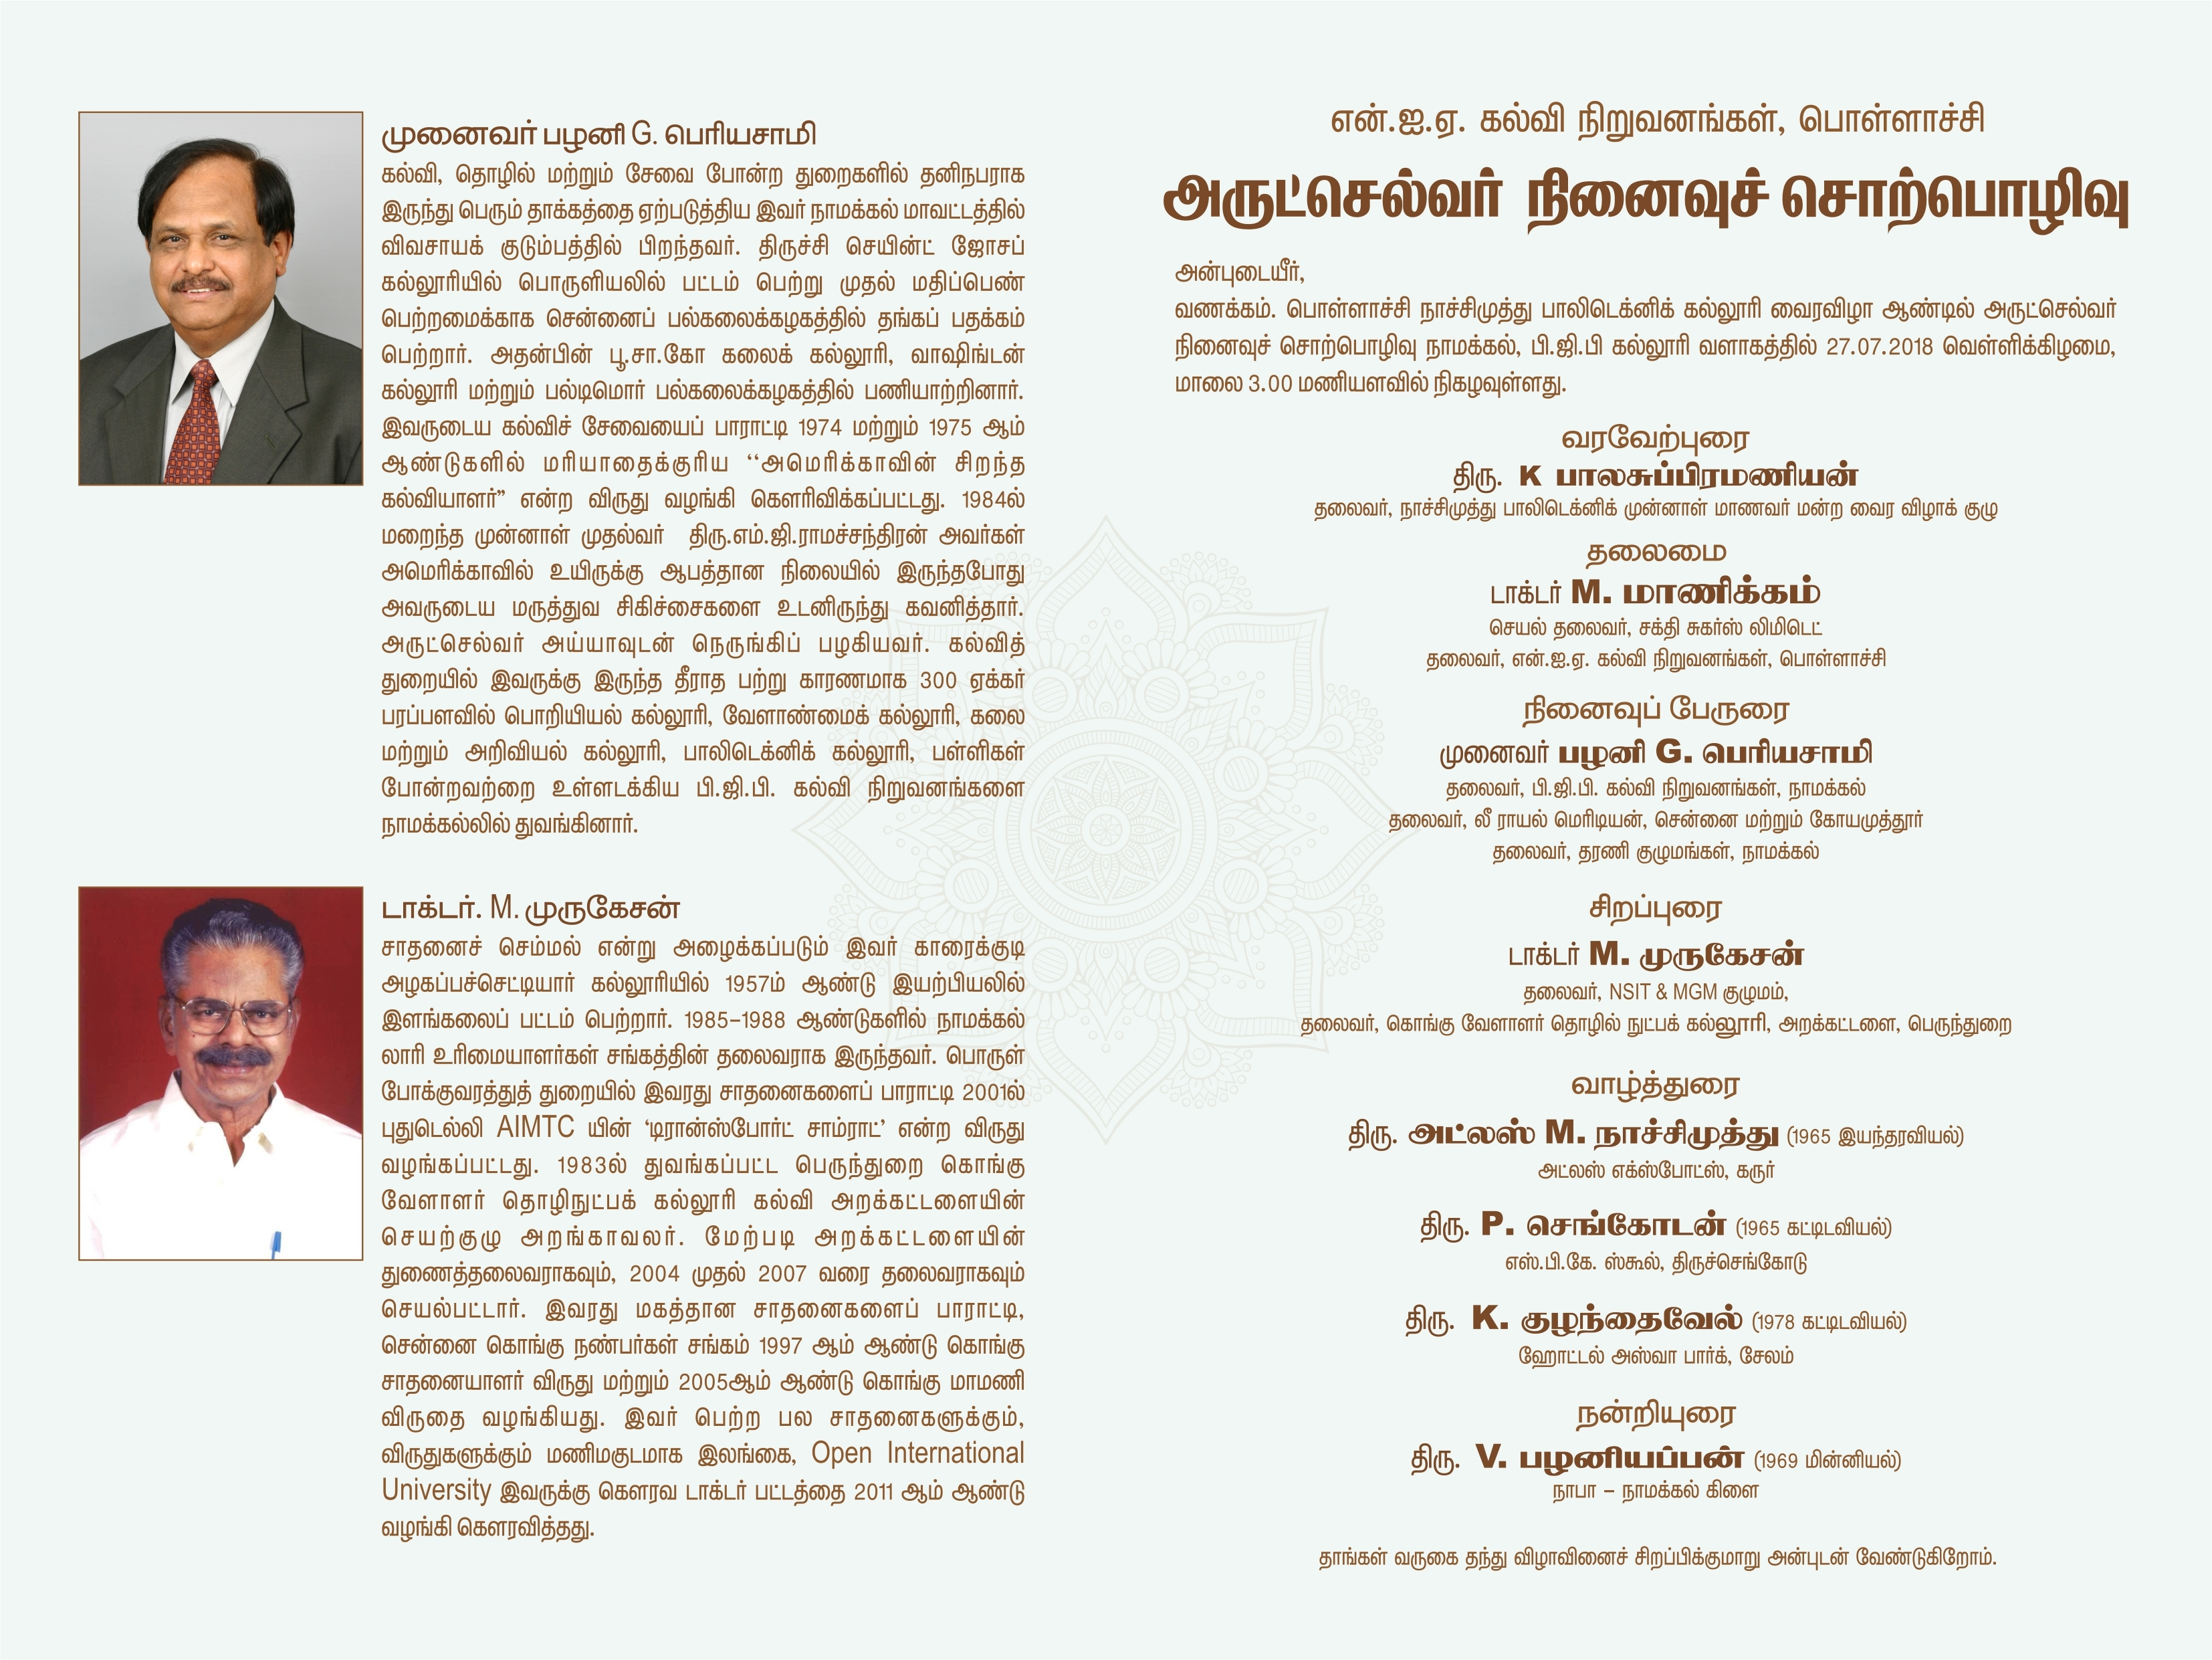 Arutchelvar Memorial Lecture by Karur, Namakkal, Tiruchengode and Salem Chapter